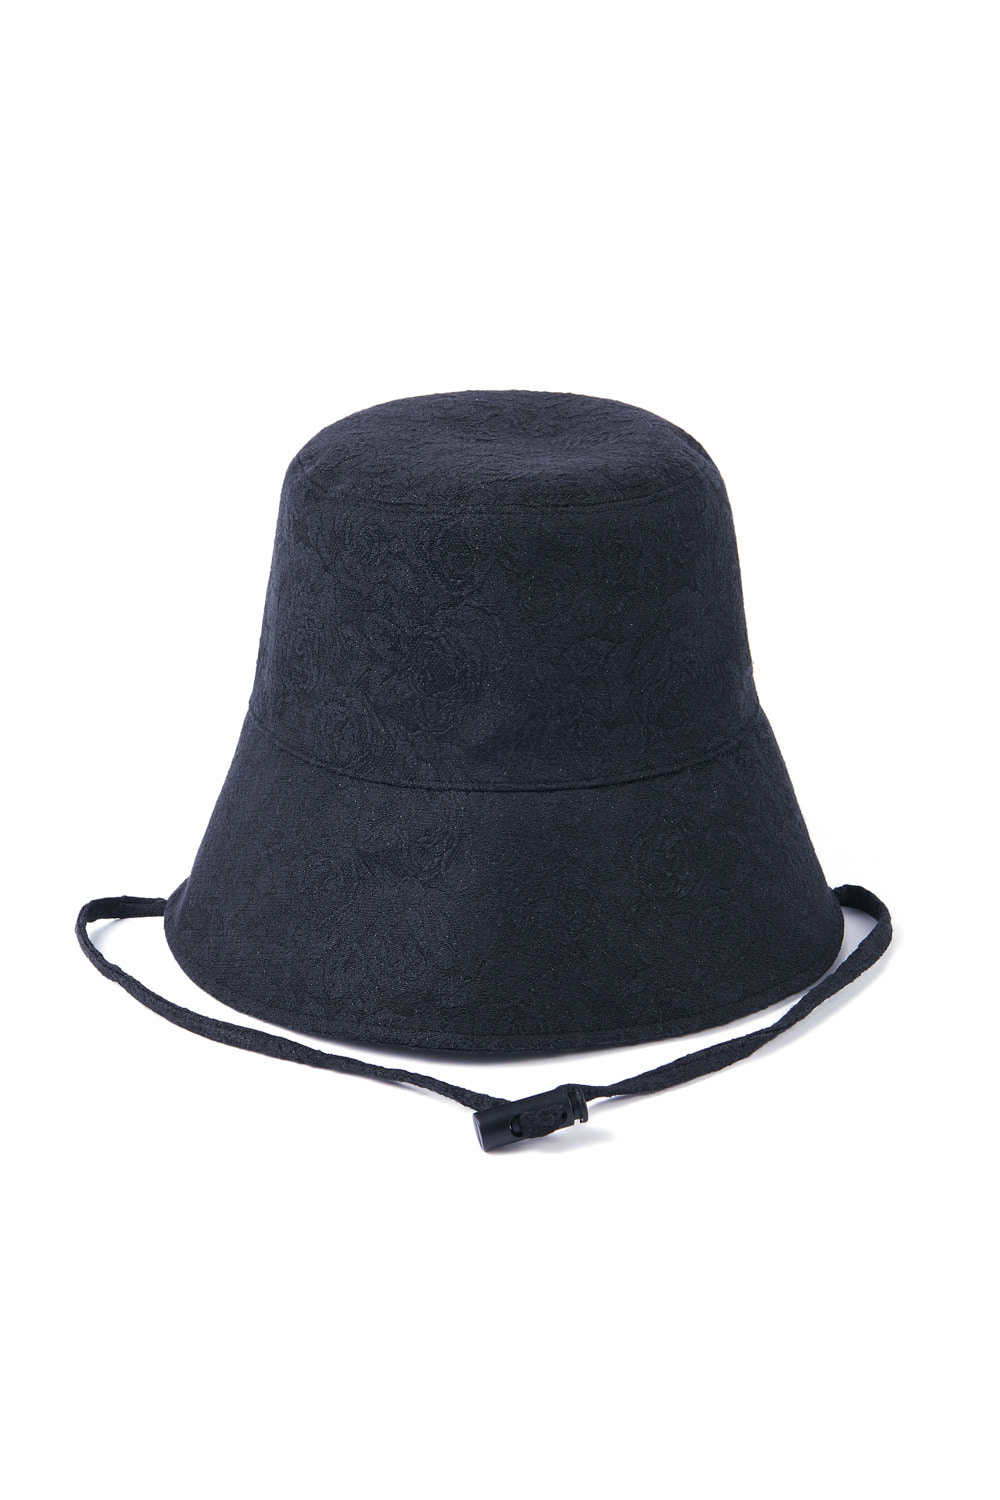 JACQUARD SLIT BUCKET HAT_black rose